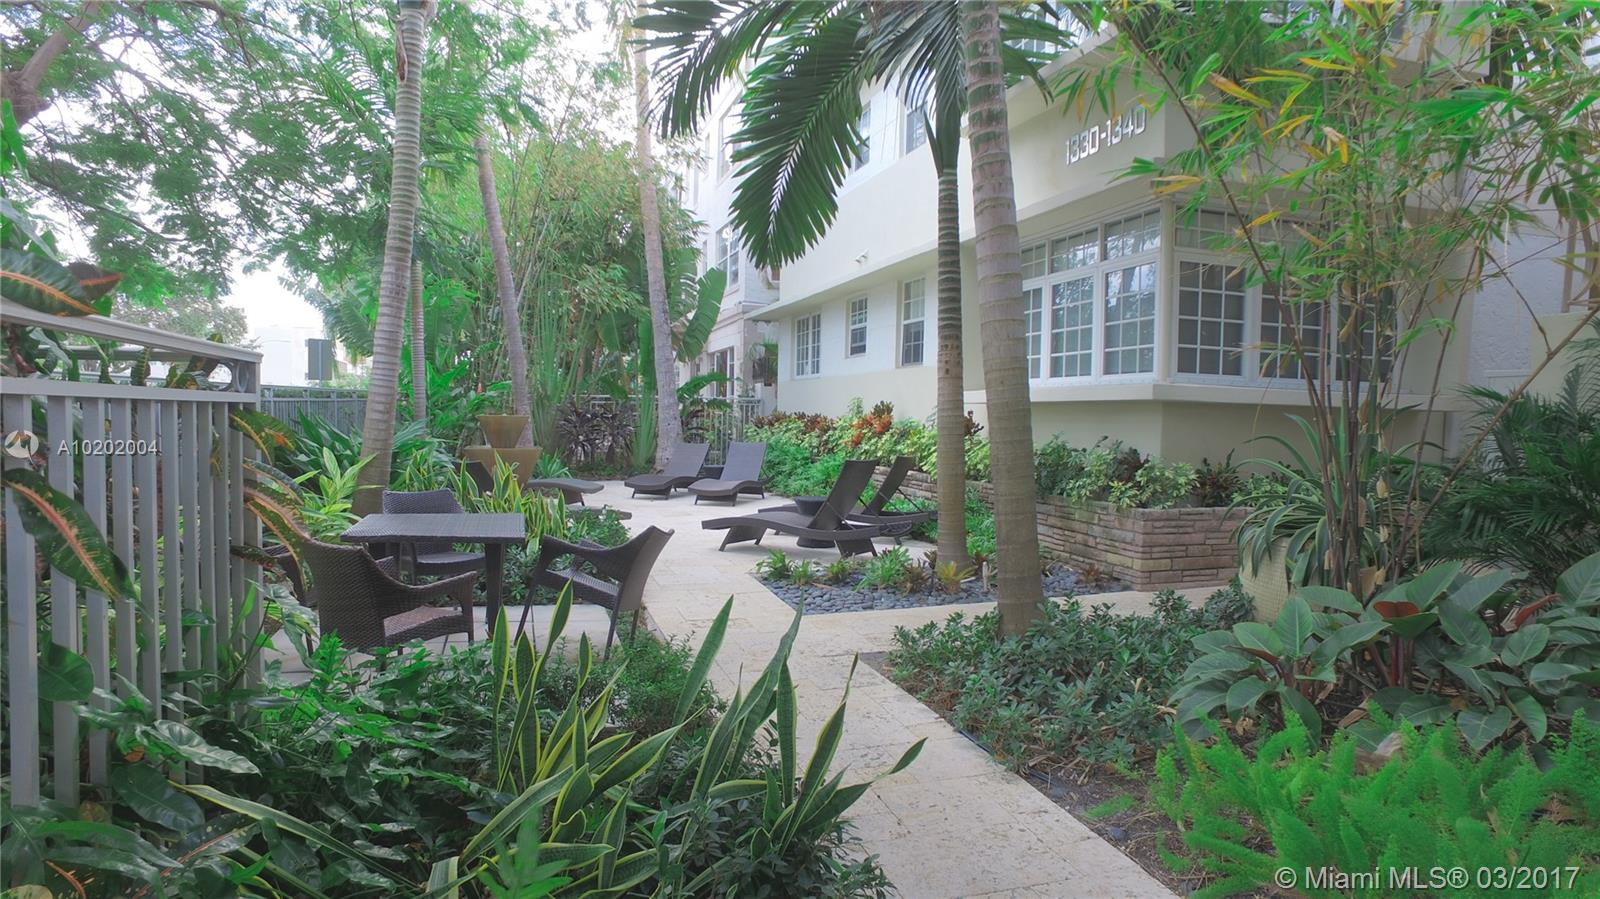 Awesome Apartment Located In The Heart Of South Beach The Retreat, Wood Floors, Central A/C & Stainless Steel Appliances, Granite Counters, Freshly Painted. Close To Shopping Stores. Quiet Building, Easy To Show. Great Deal And Easy Motivated.